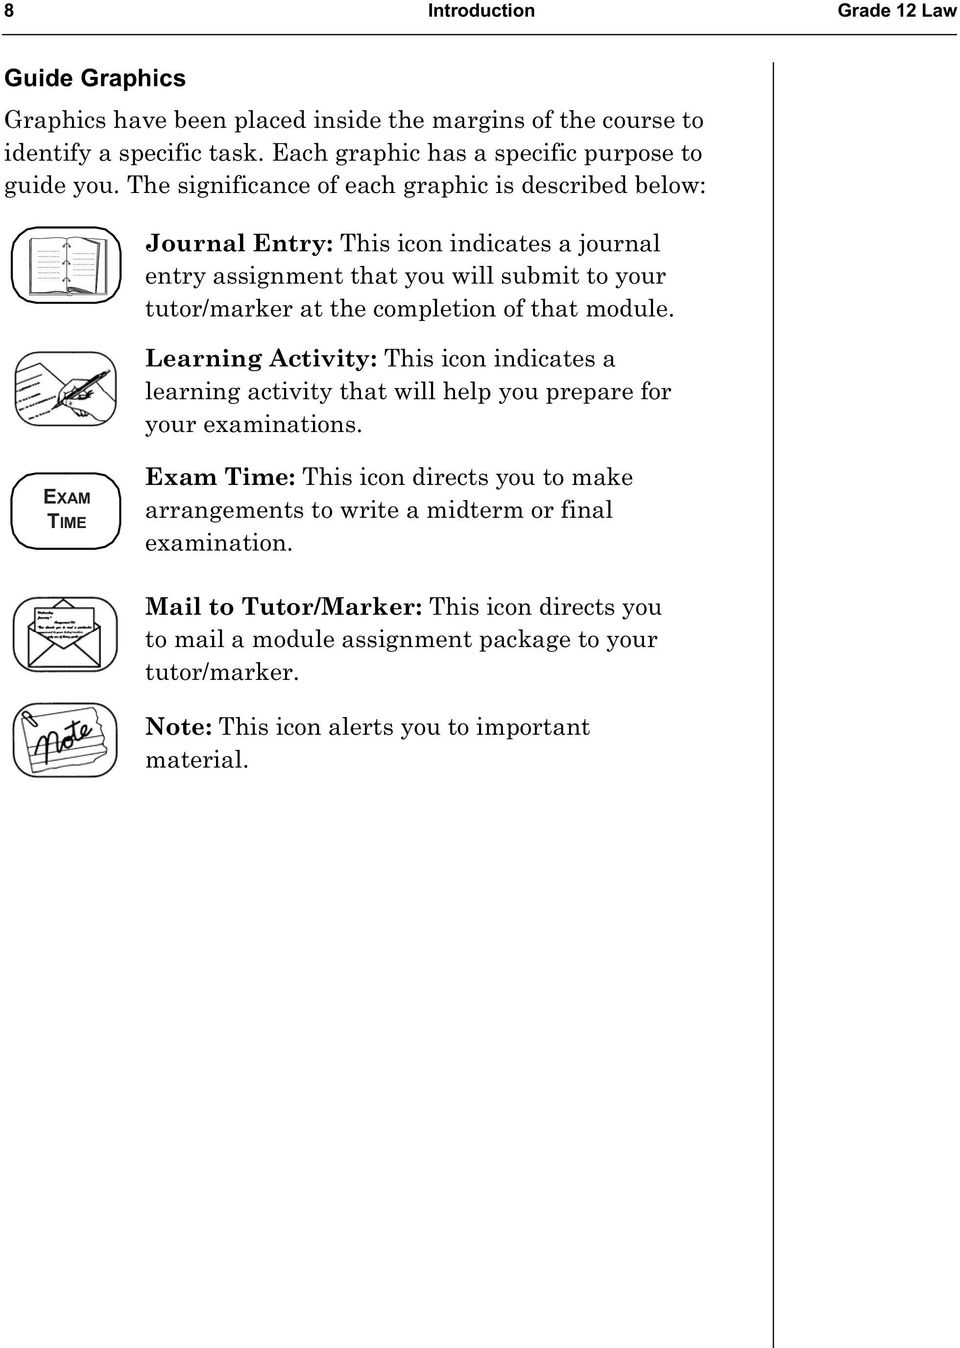 module. Learning Activity: This icon indicates a learning activity that will help you prepare for your examinations.